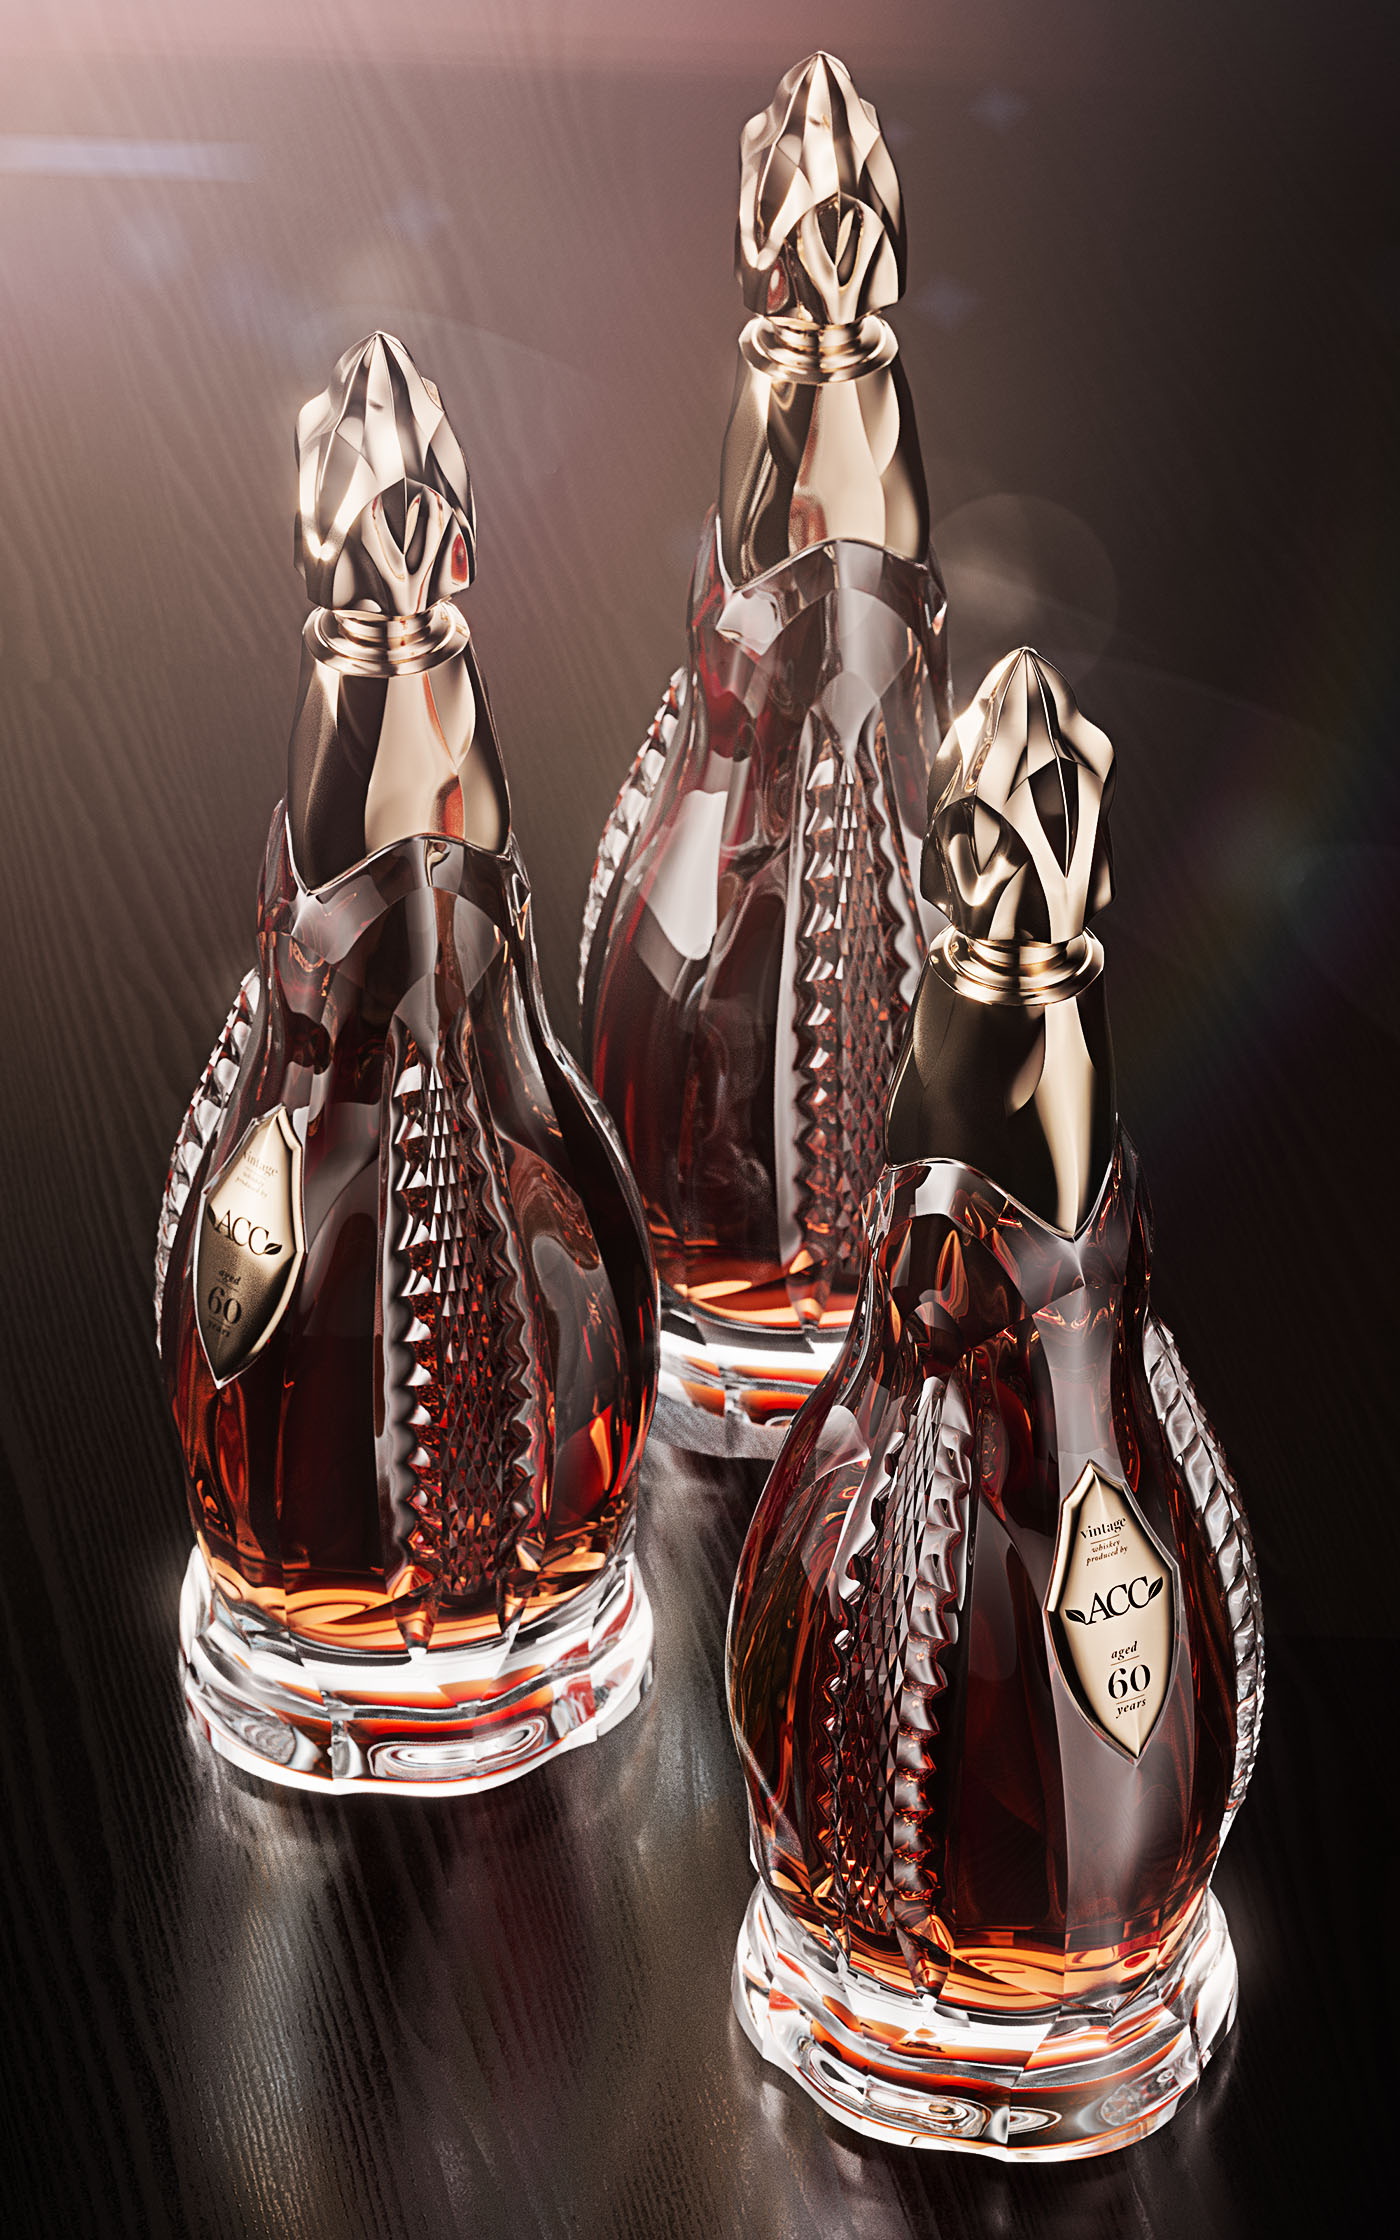 Luxury whisky bottle 4.jpg